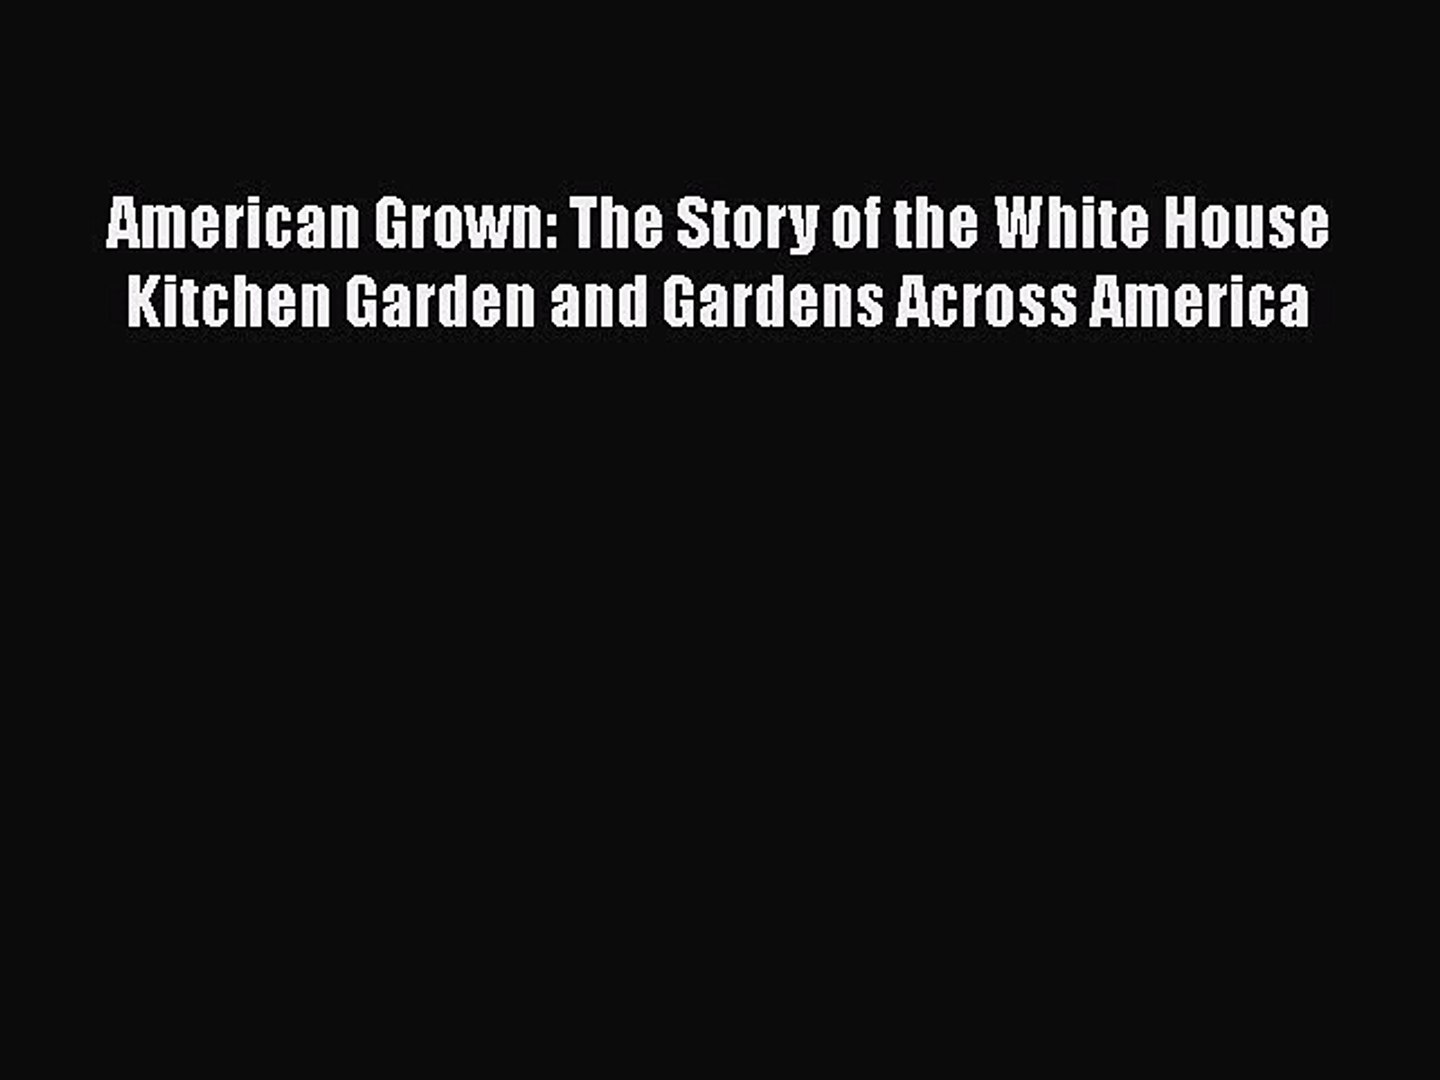 Read American Grown: The Story of the White House Kitchen Garden and Gardens Across America